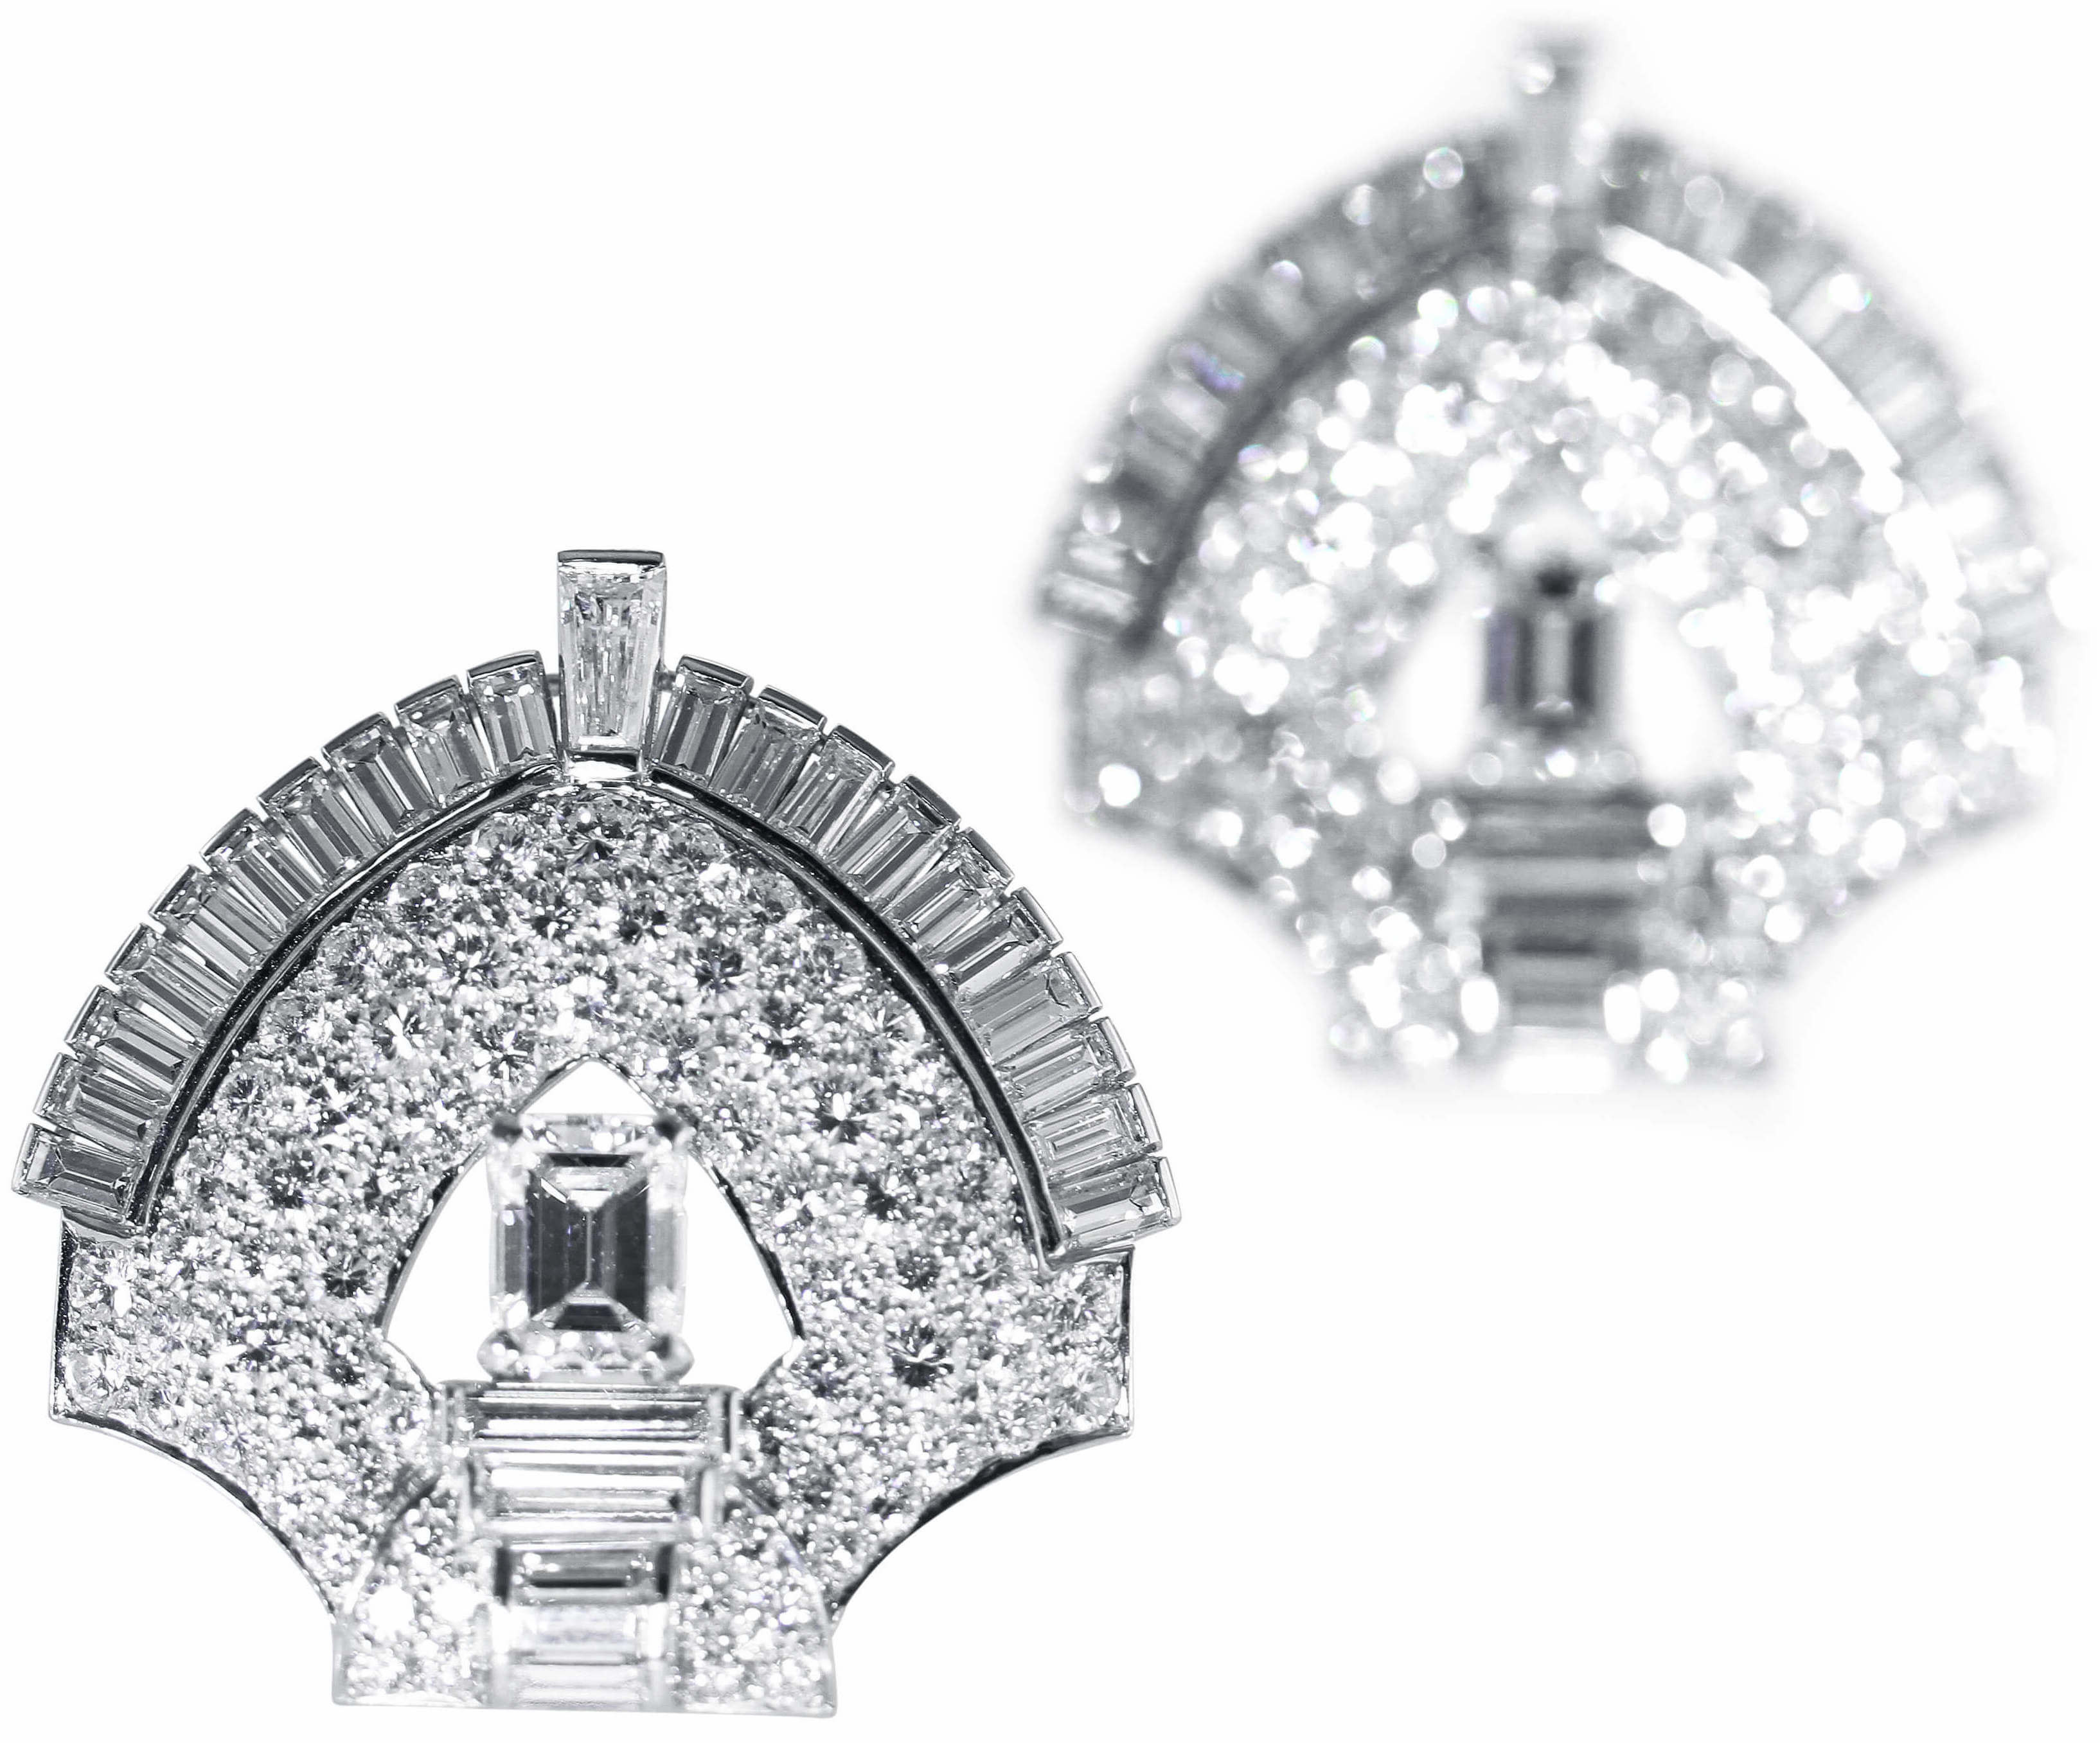 estate jeweler atlanta j.s. fearnley contact us